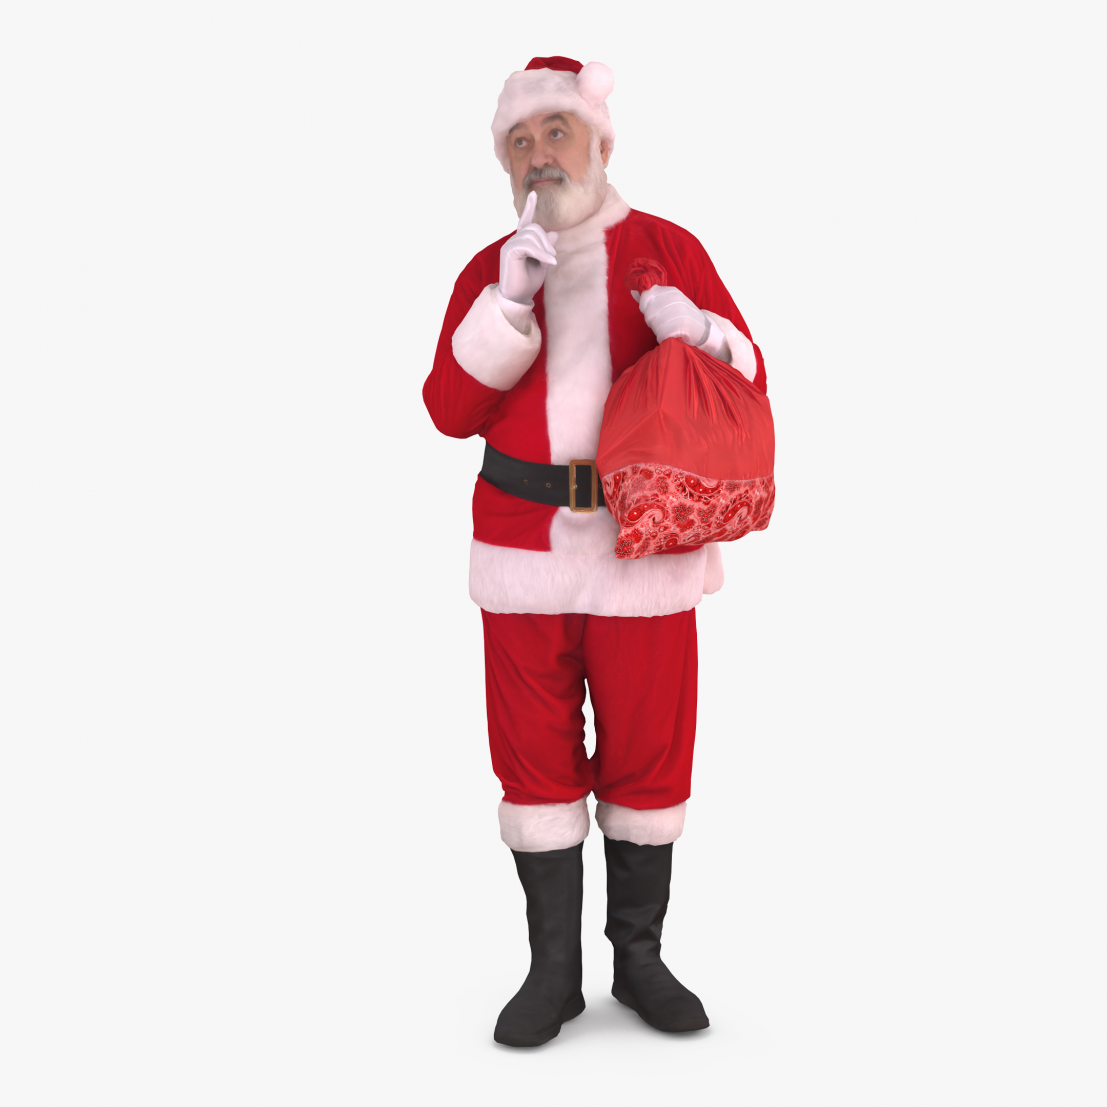 Santa Secret 3D Model | 3DTree Scanning Studio